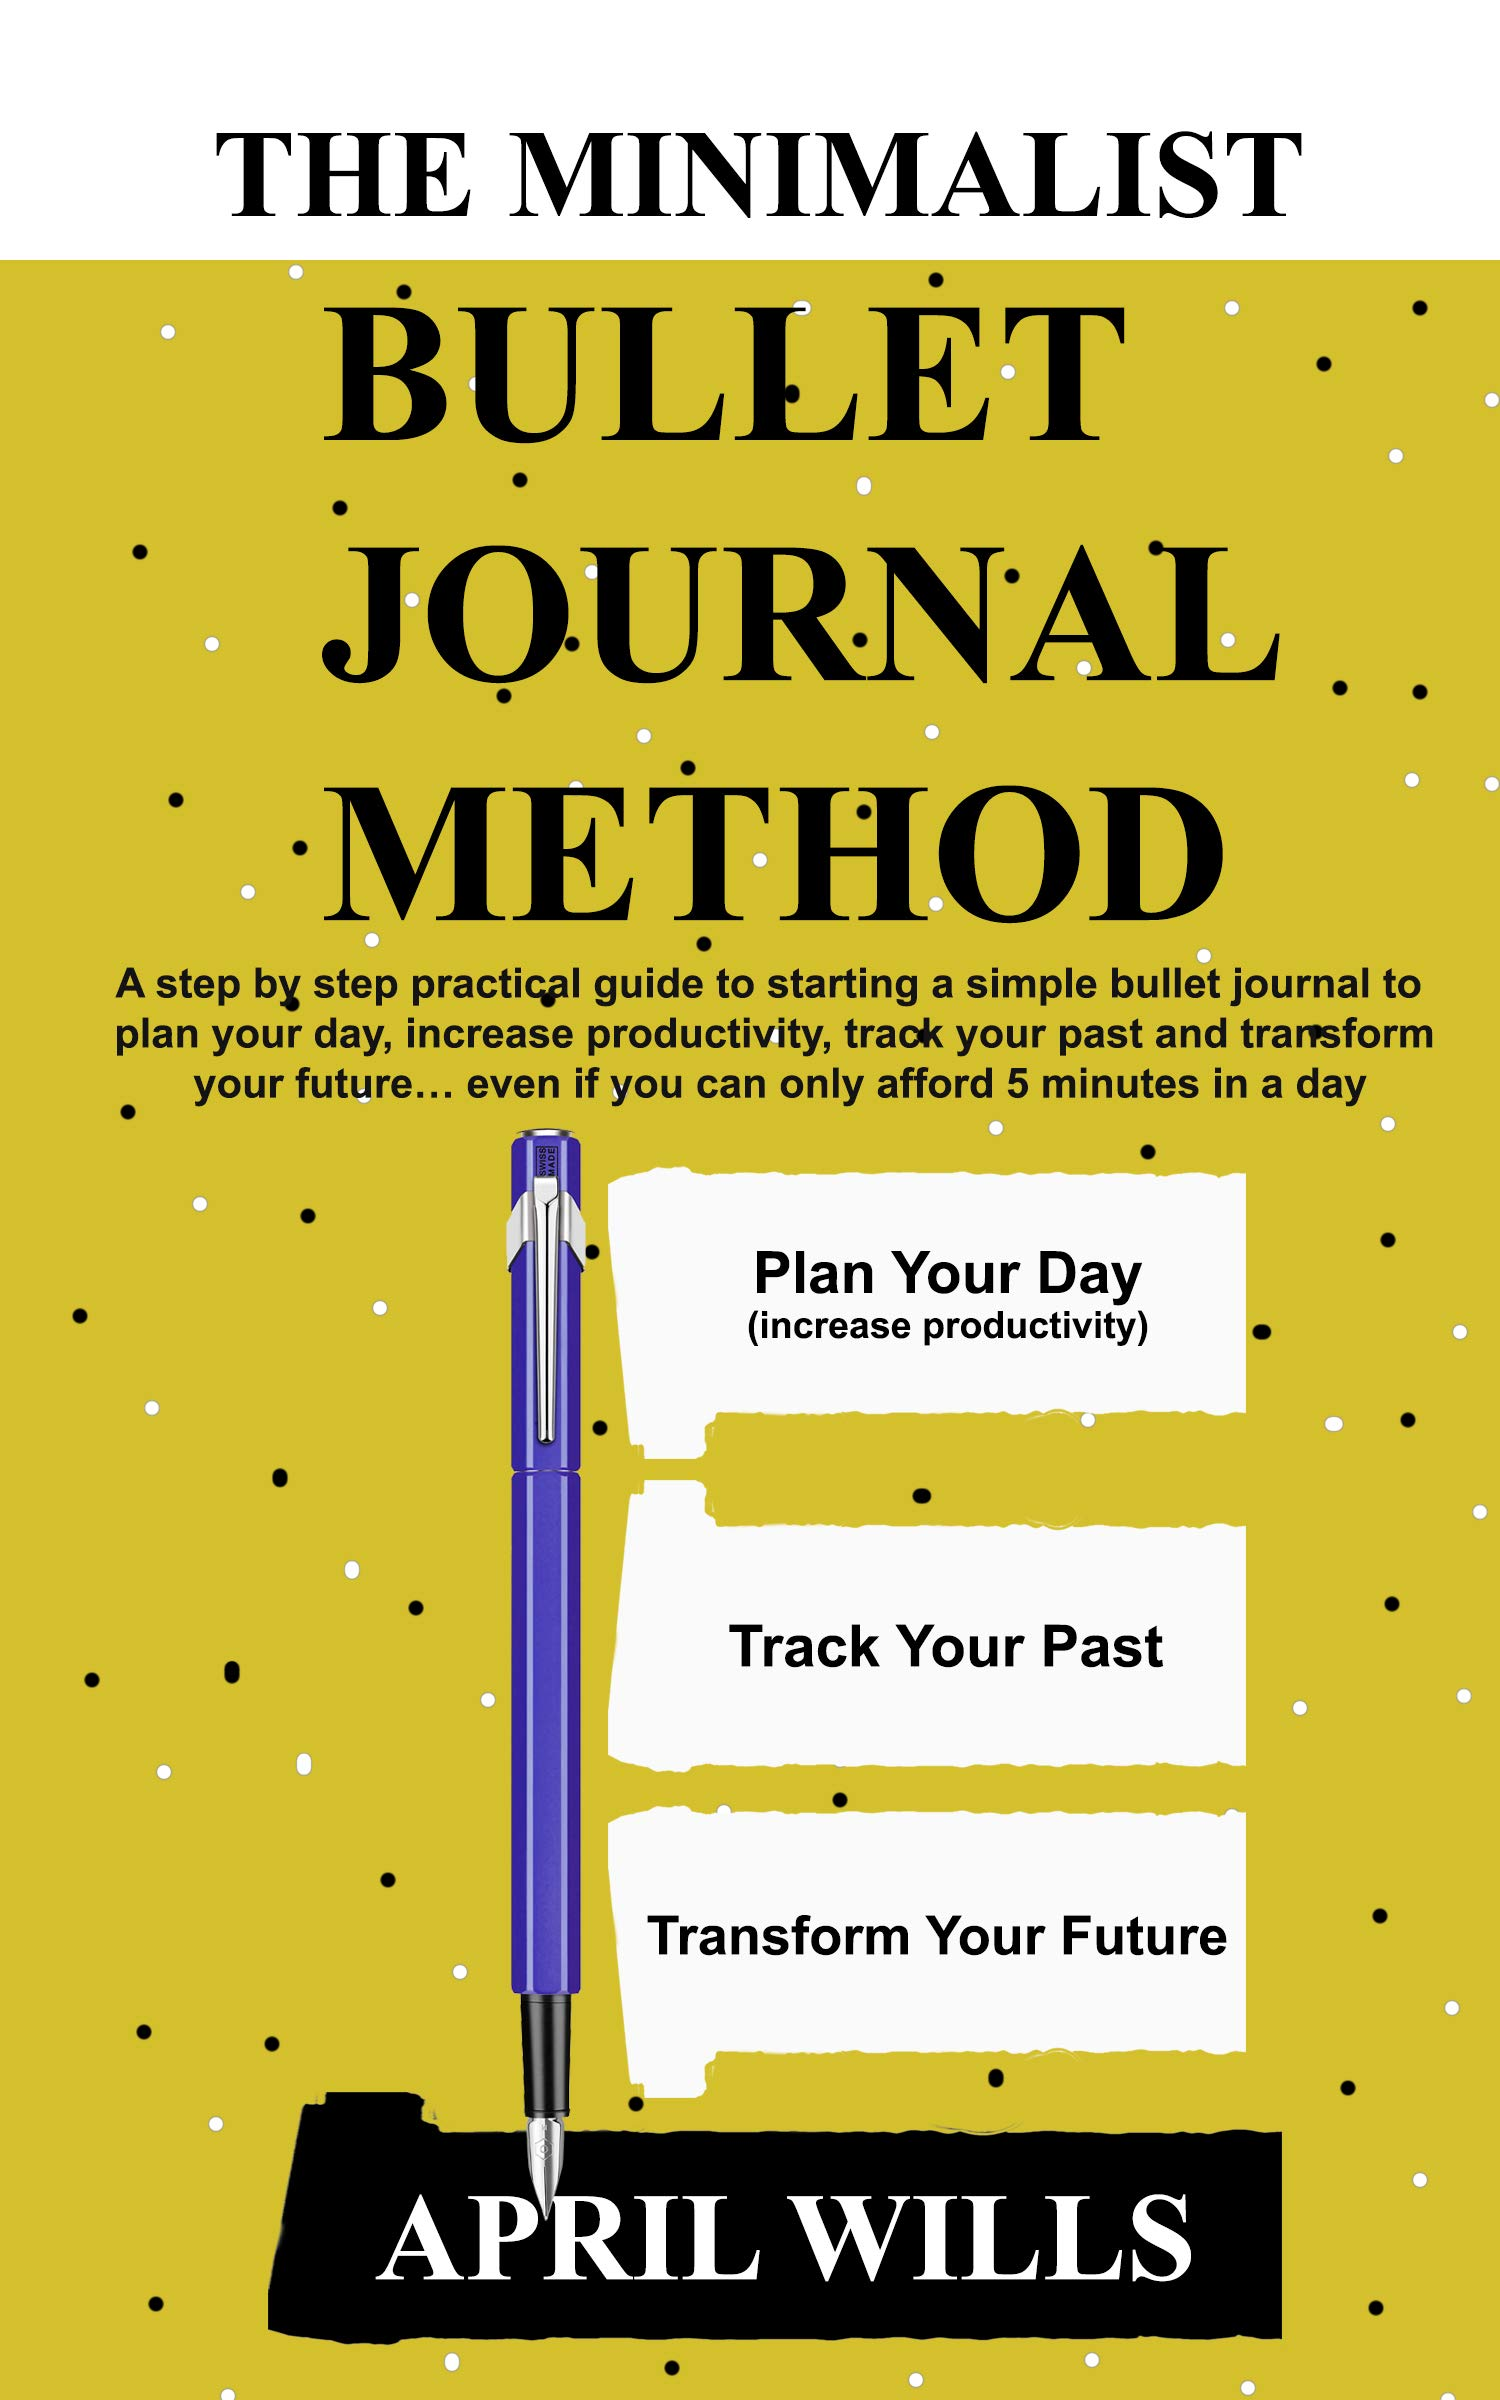 THE MINIMALIST BULLET JOURNAL METHOD: A step by step practical guide to starting a simple bullet journal to plan your day, increase productivity, track ... and transform your future